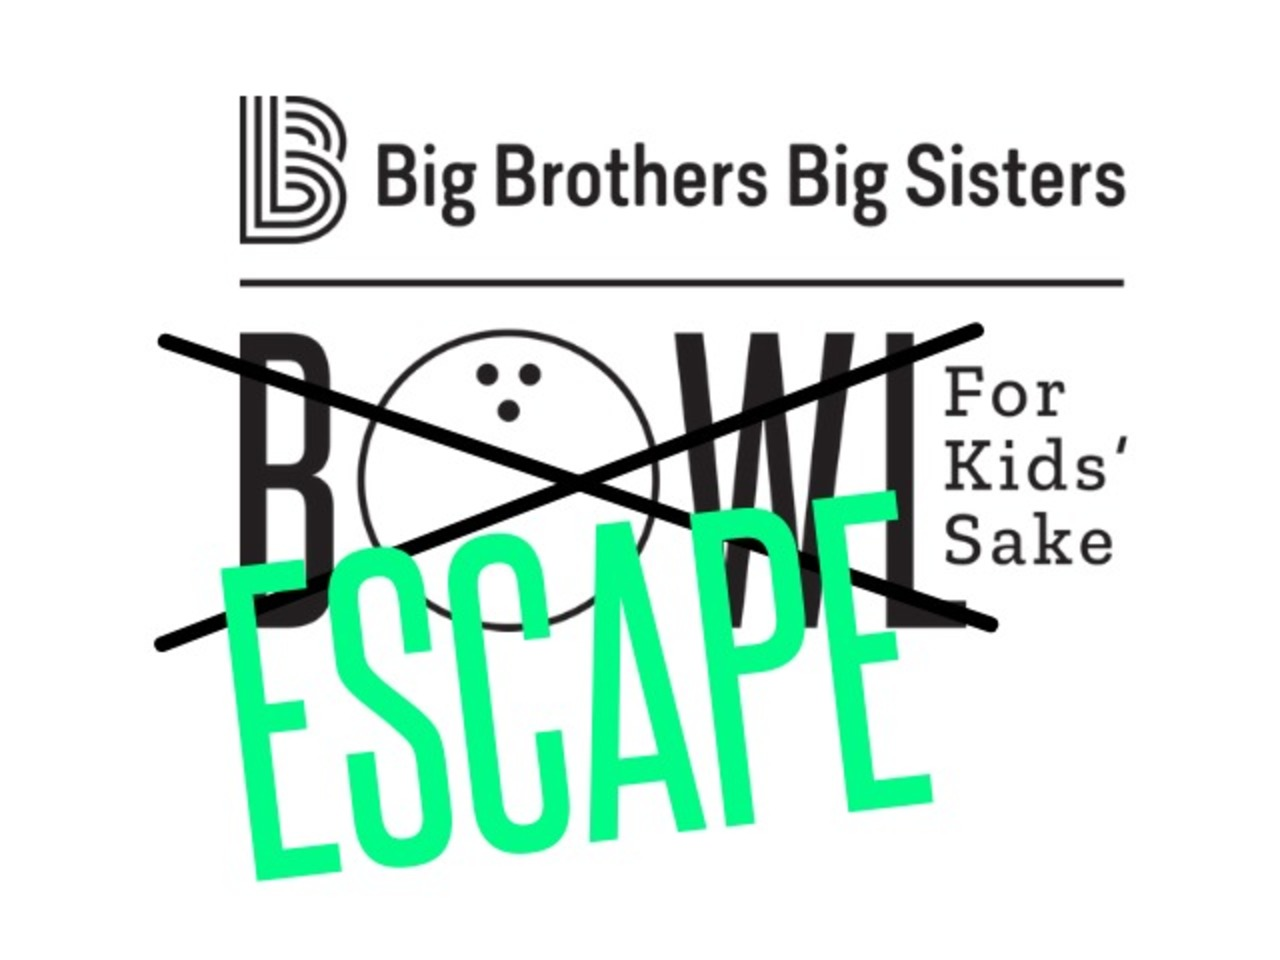 Richmond Escape (a.k.a. Bowl) for Kids' Sake 2021